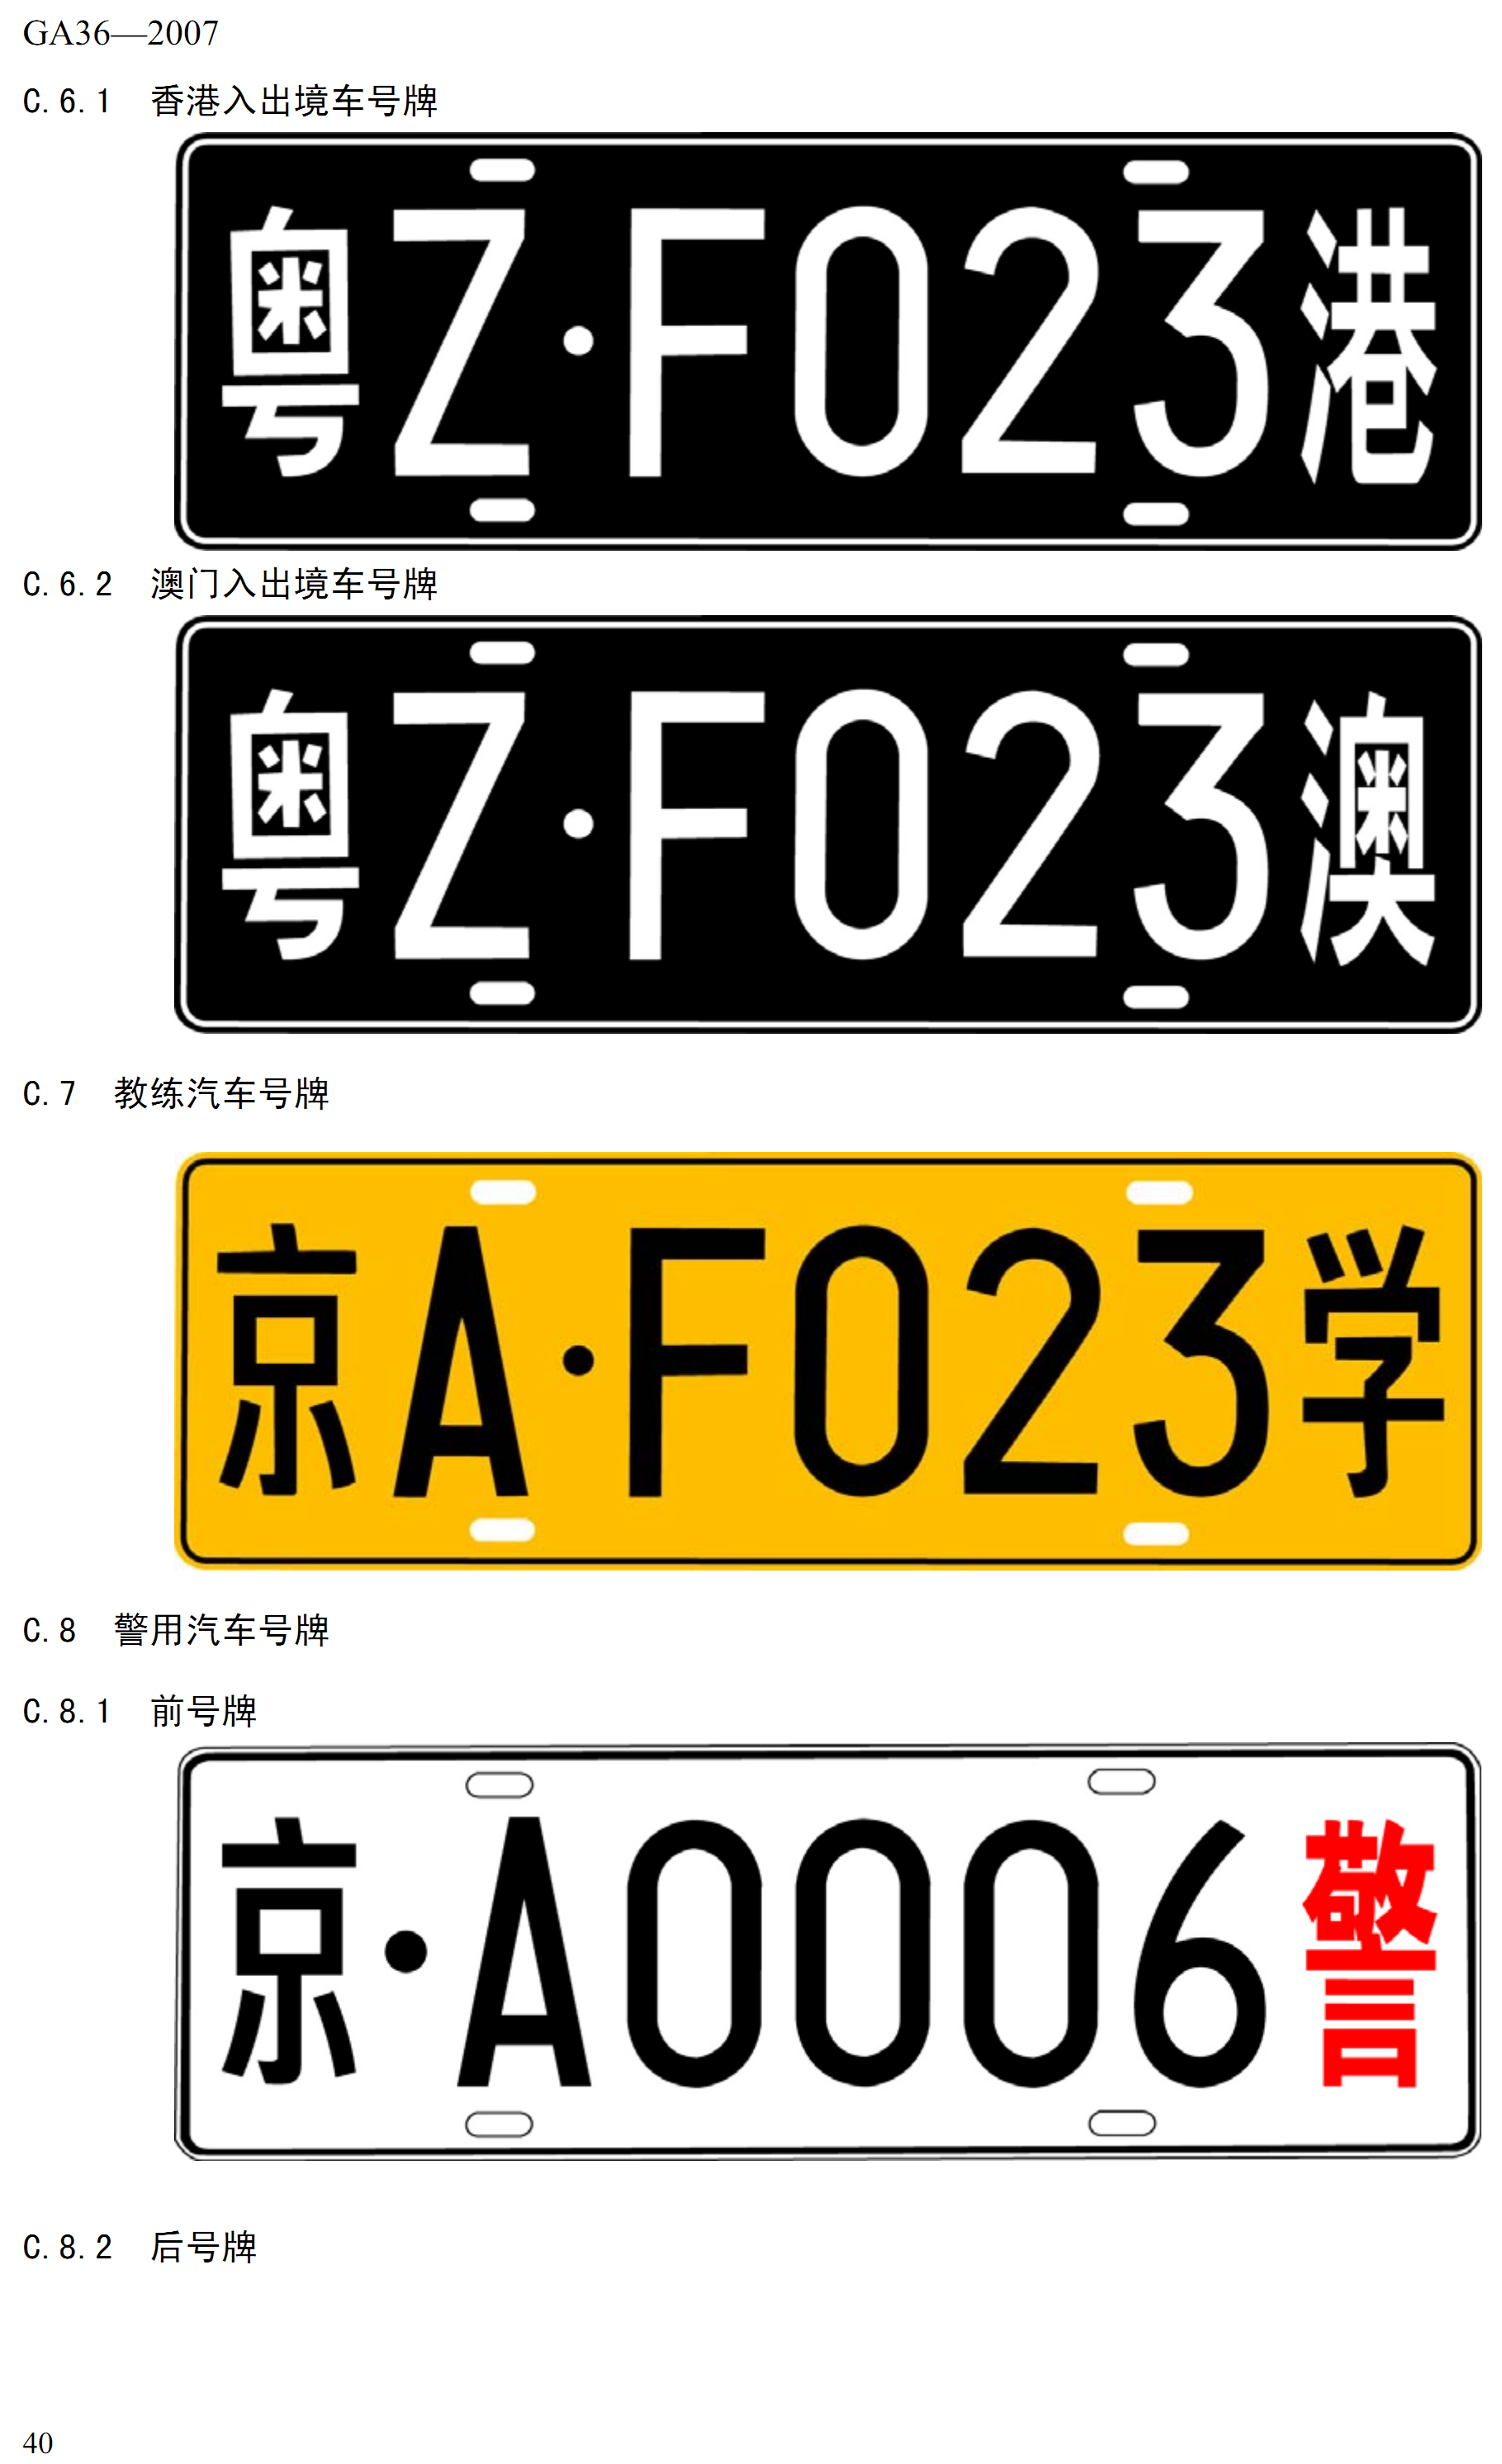 How to Transfer Your License Plate Number From Your Old ... |Truck Registration Plate